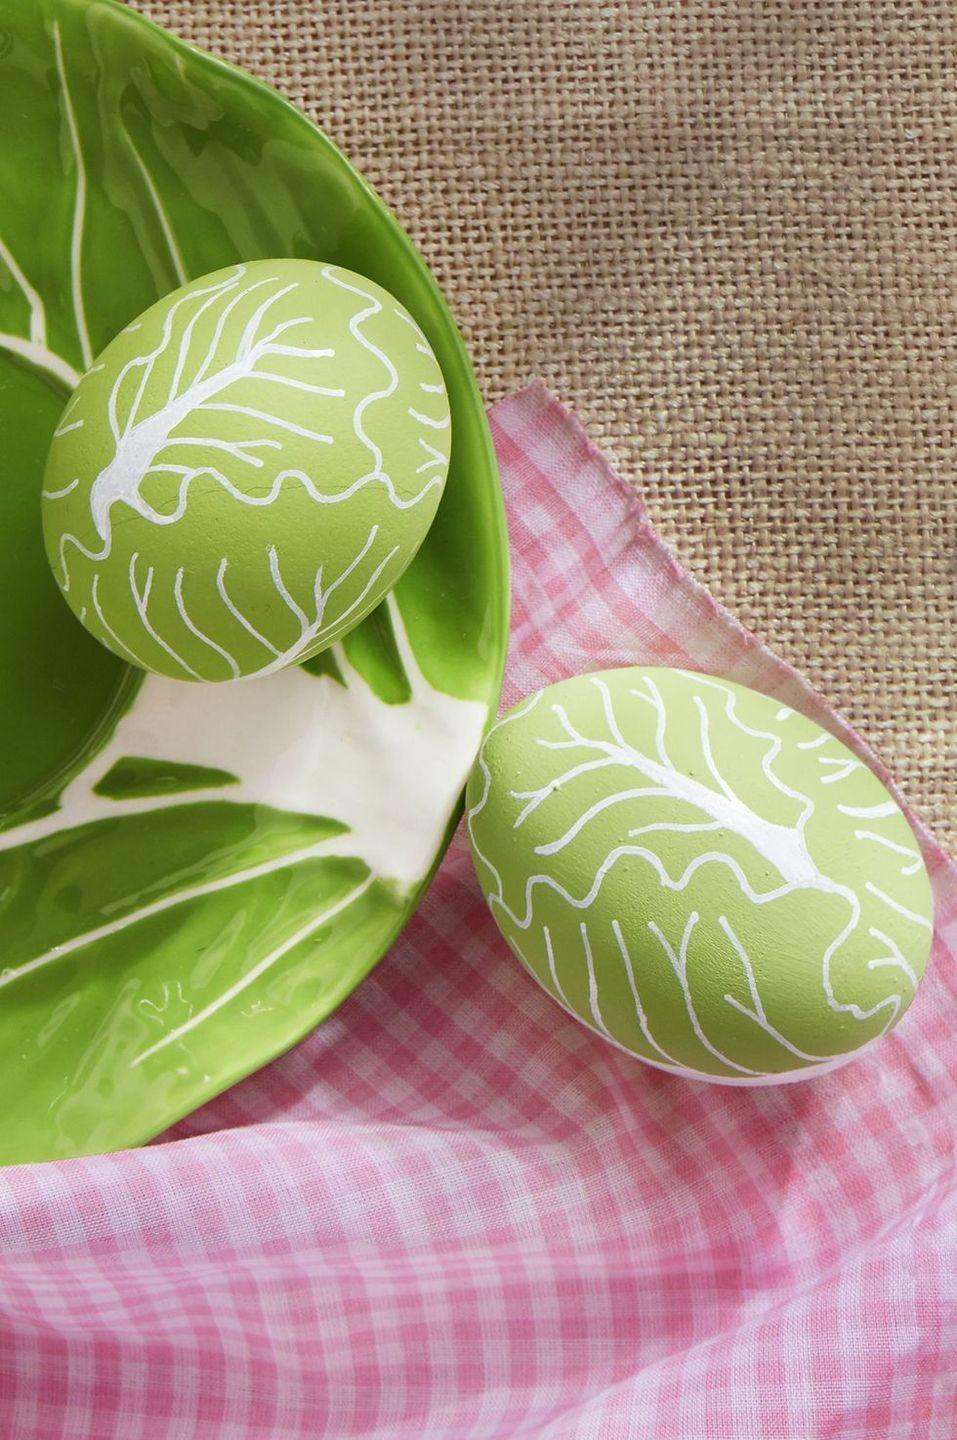 <p>Use a thin-tipped white paint pen to create the look of lettuce leaves' veins upon green dyed eggs. Skillful artists (with steady hands) can even achieve a convincing <em>trompe l'oeil </em>effect using this method.</p>